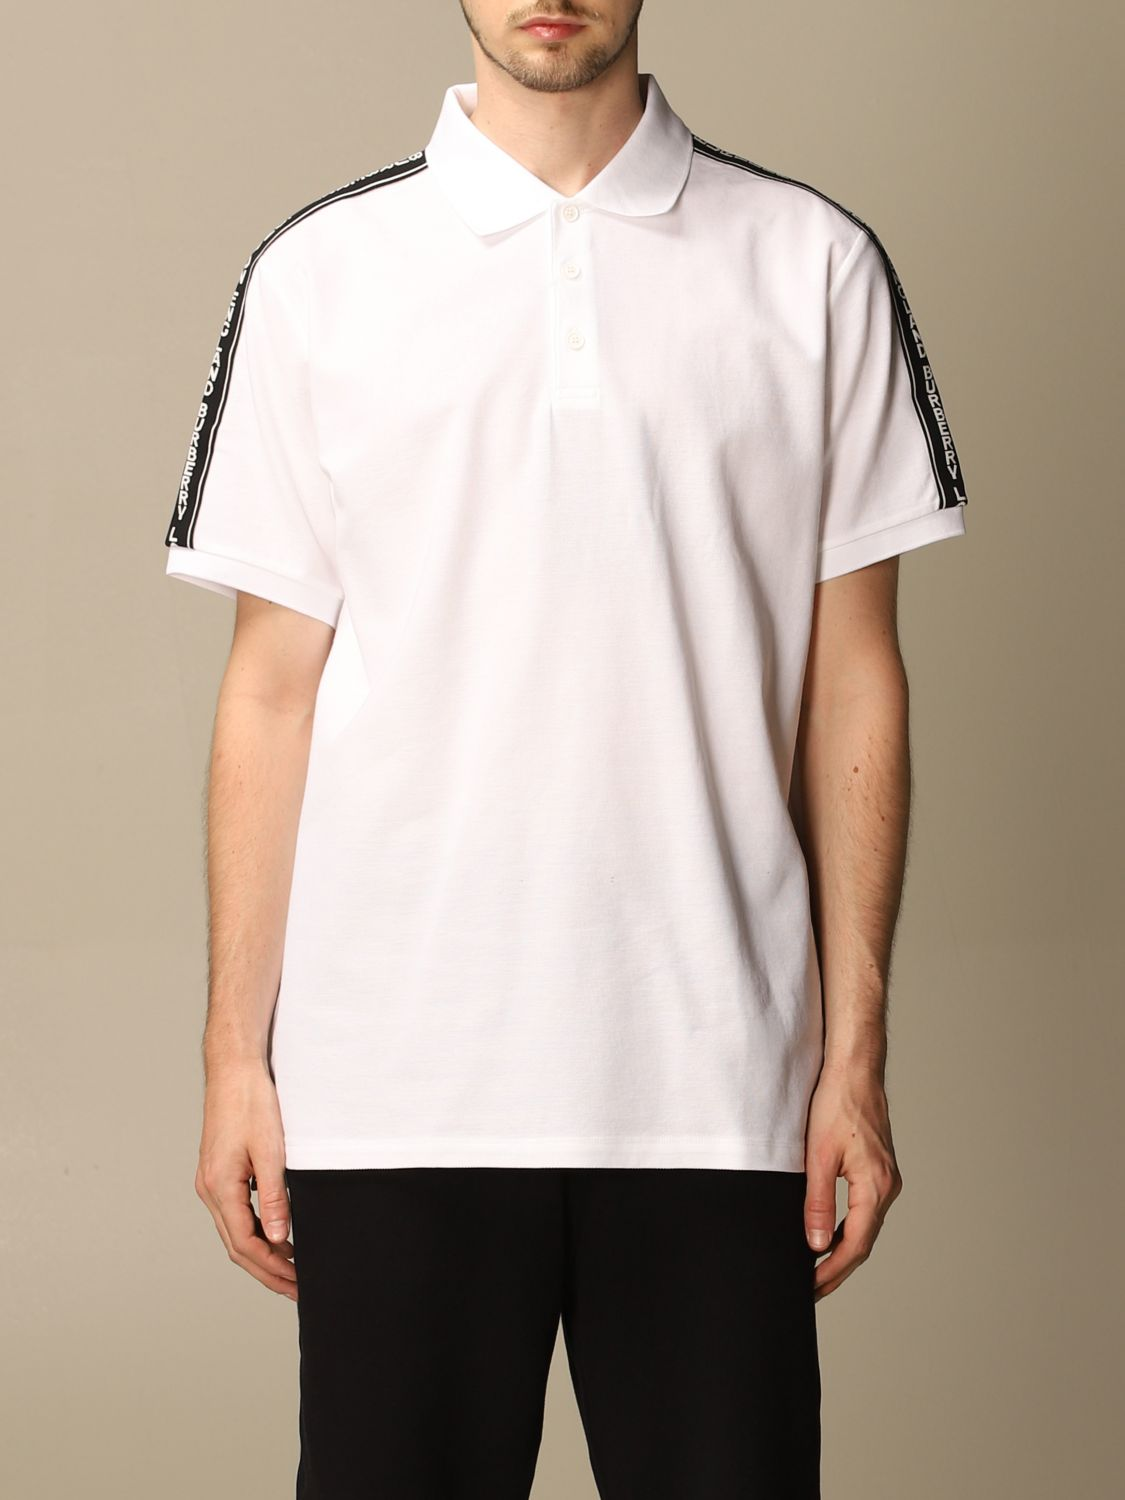 Polo shirt Burberry: Stonely Burberry polo shirt in piqué cotton with logoed bands white 1